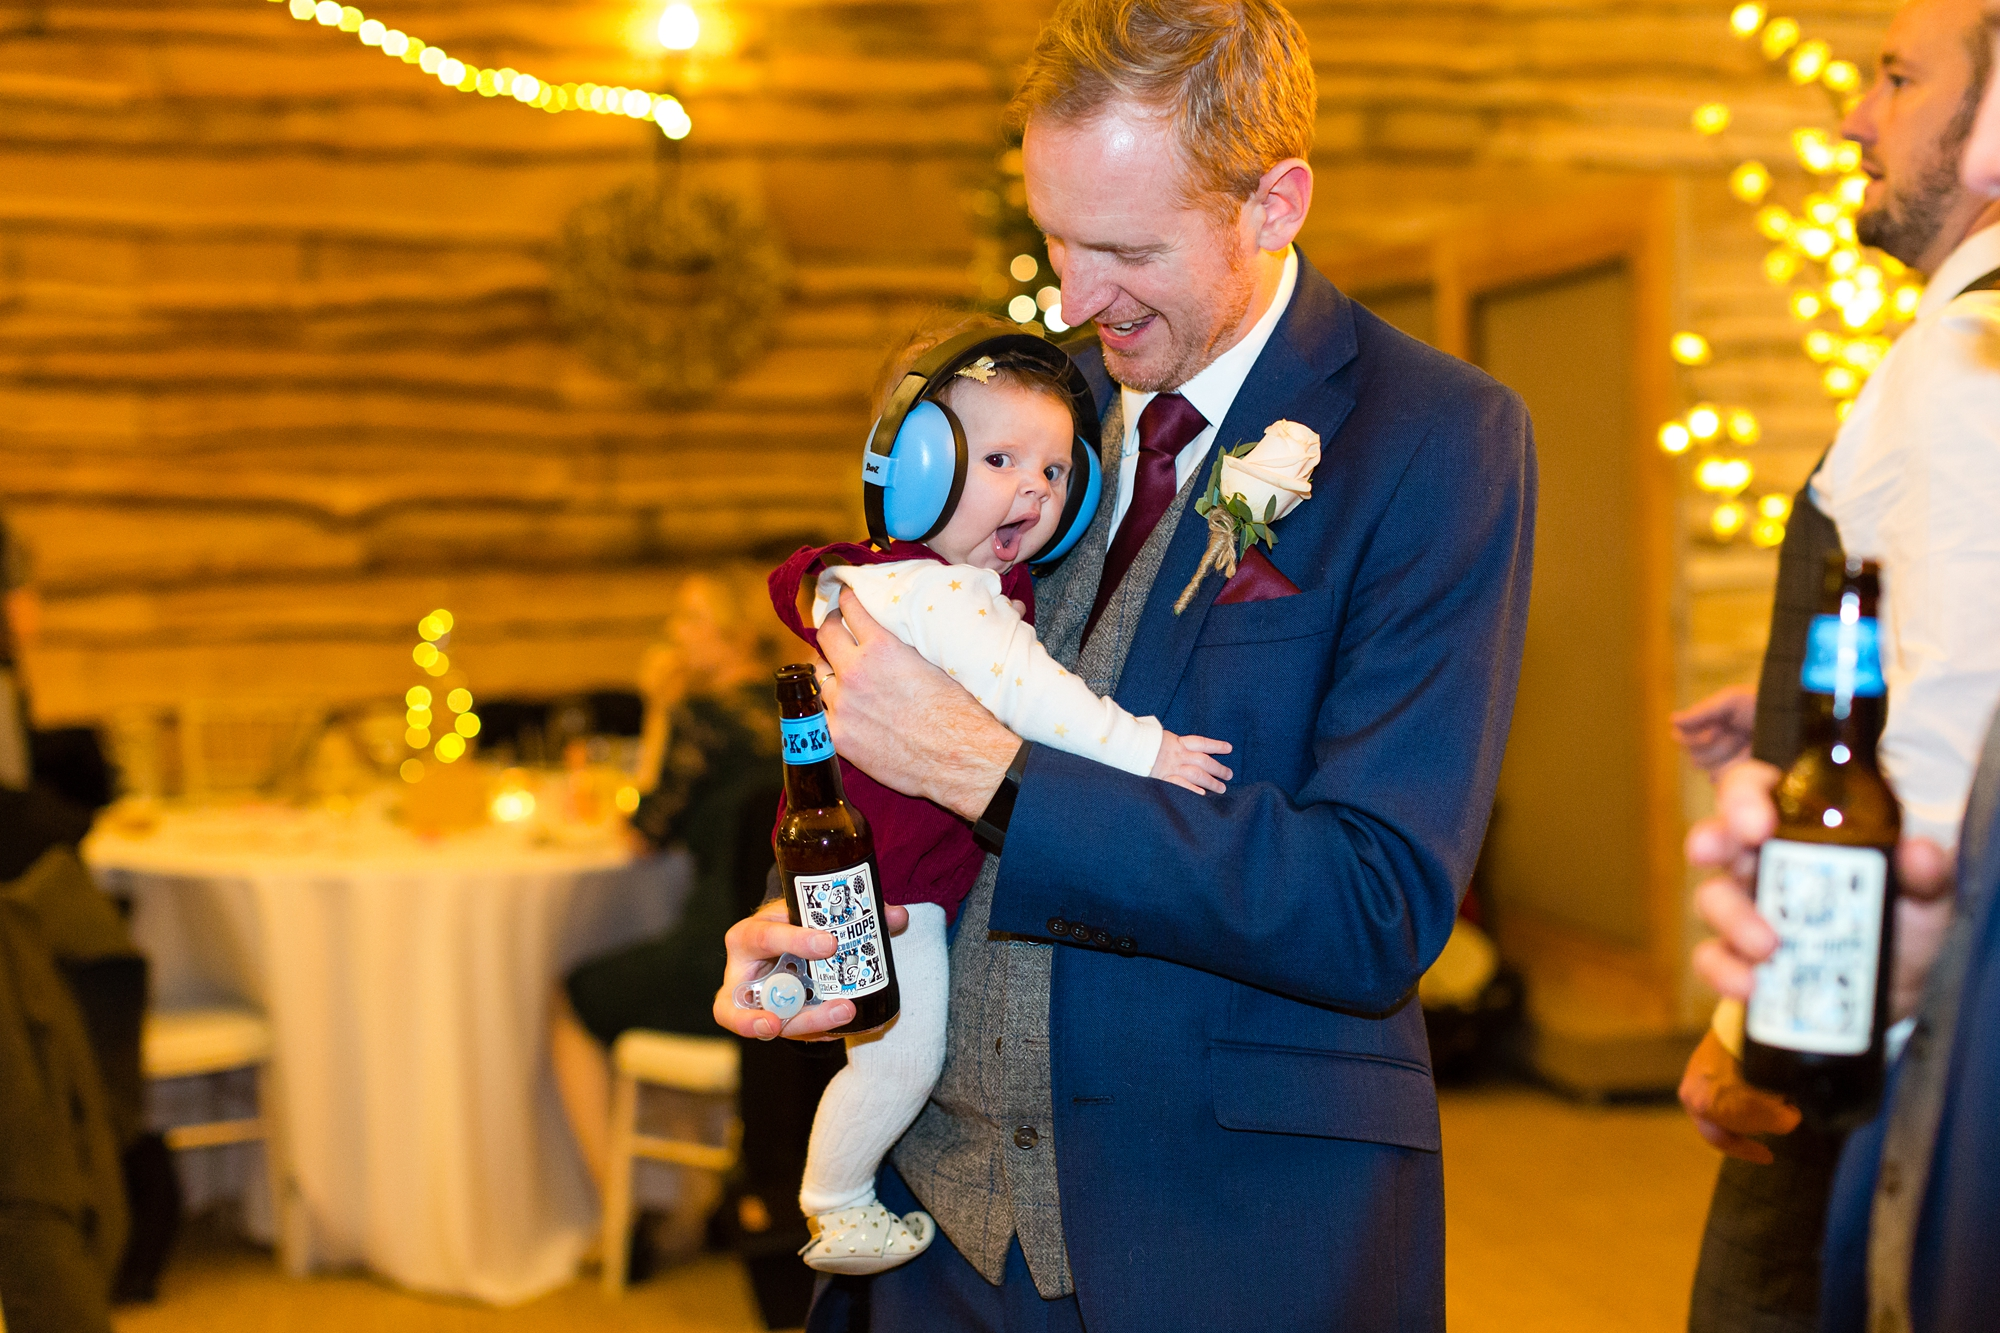 Baby with ear protection at wedding party in york